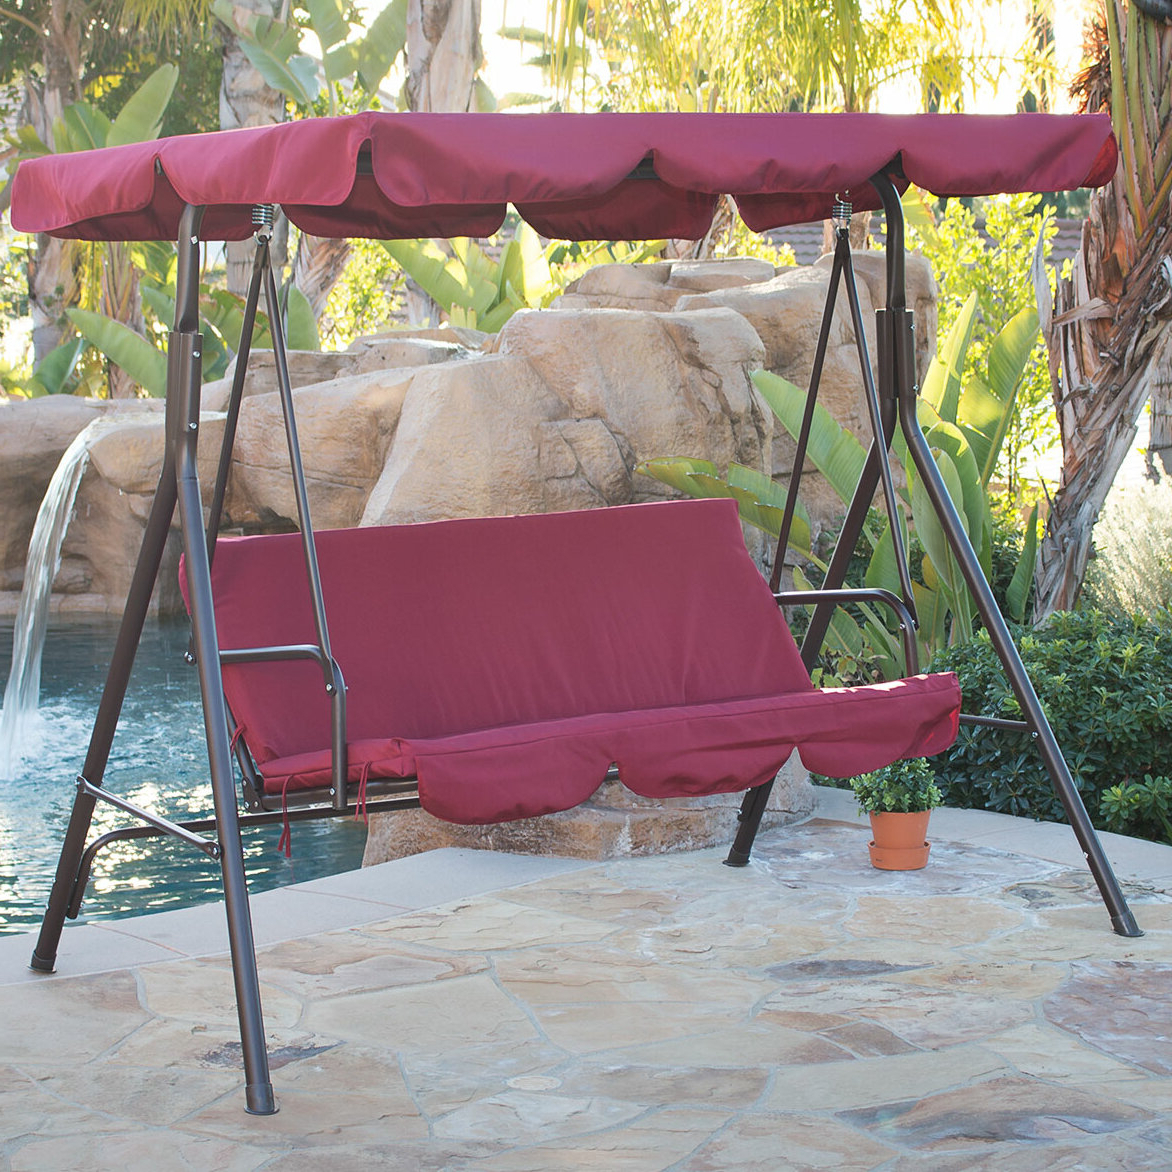 Canopy Patio Porch Swing With Stand Within Latest Freeport Park Brack Porch Swing With Stand & Reviews (Gallery 2 of 30)